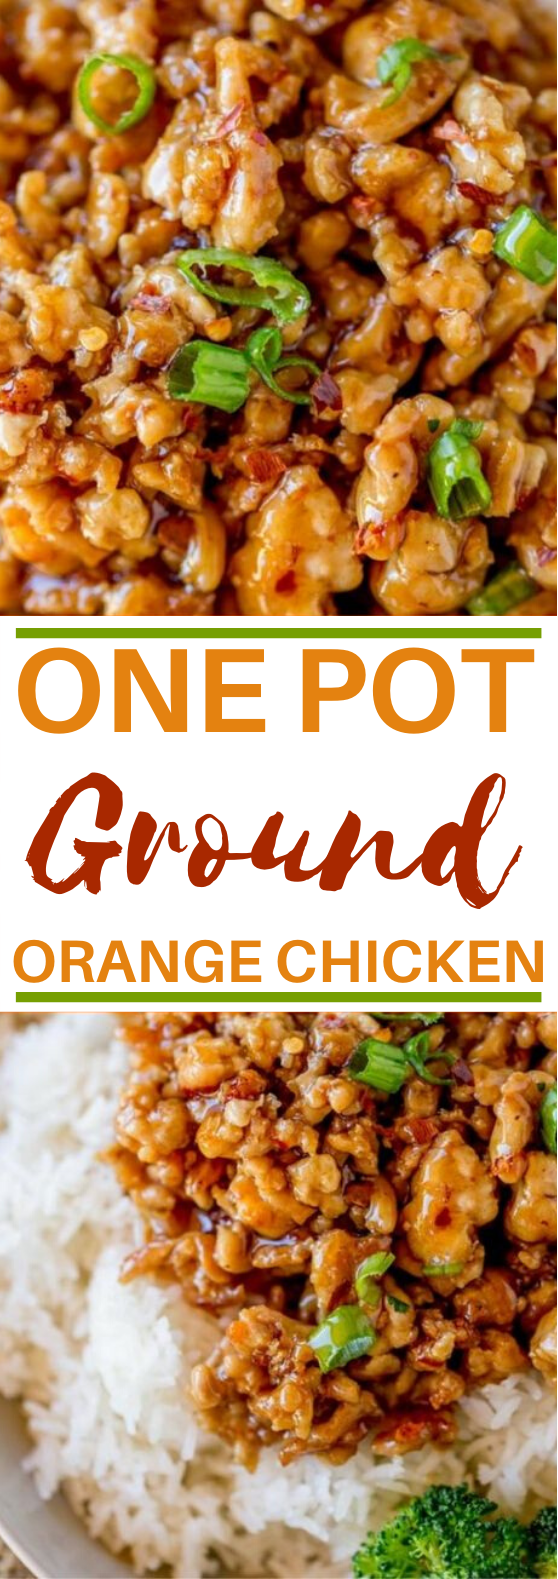 Ground Orange Chicken #dinner #chicken #easy #weeknight #recipes